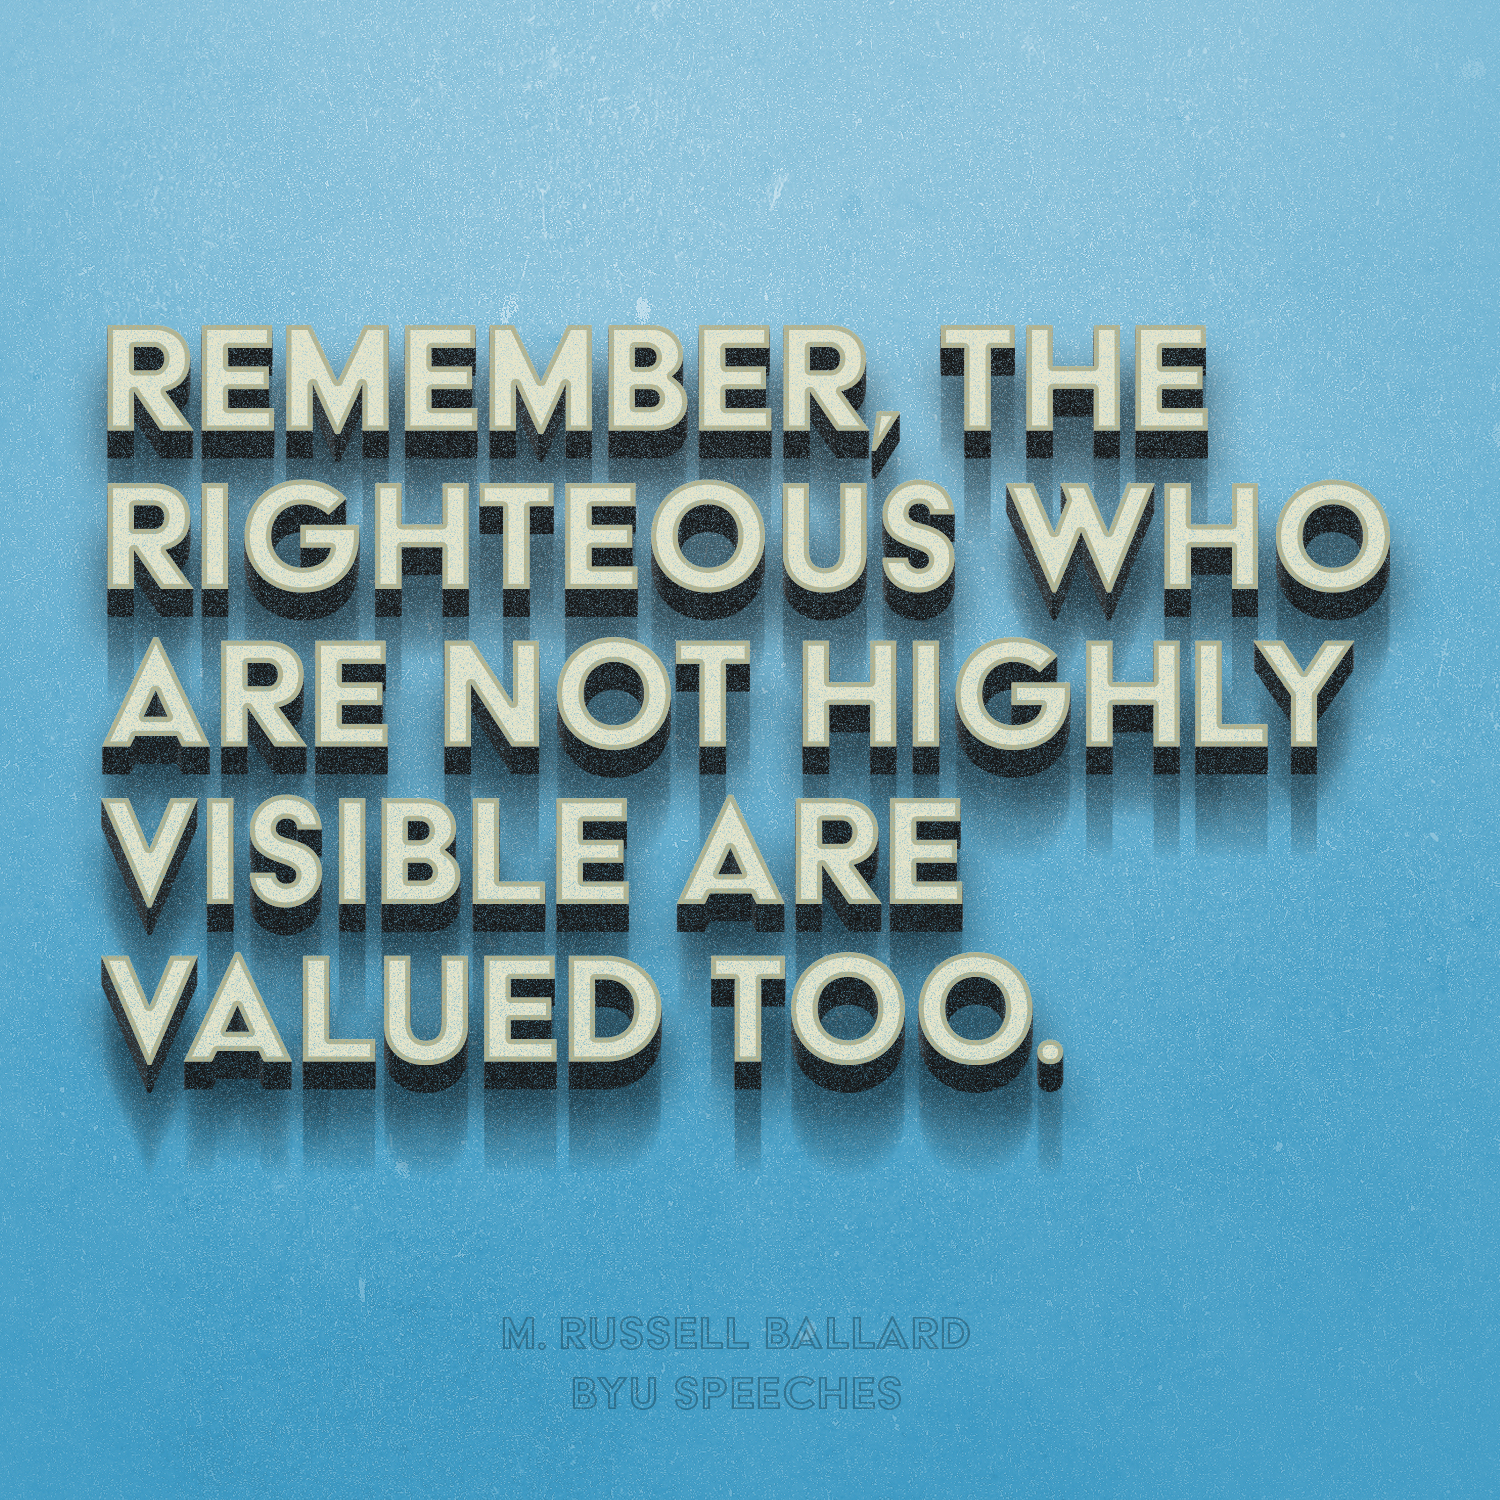 M. Russell Ballard designed quote: The righteous who are not highly visible are valued too